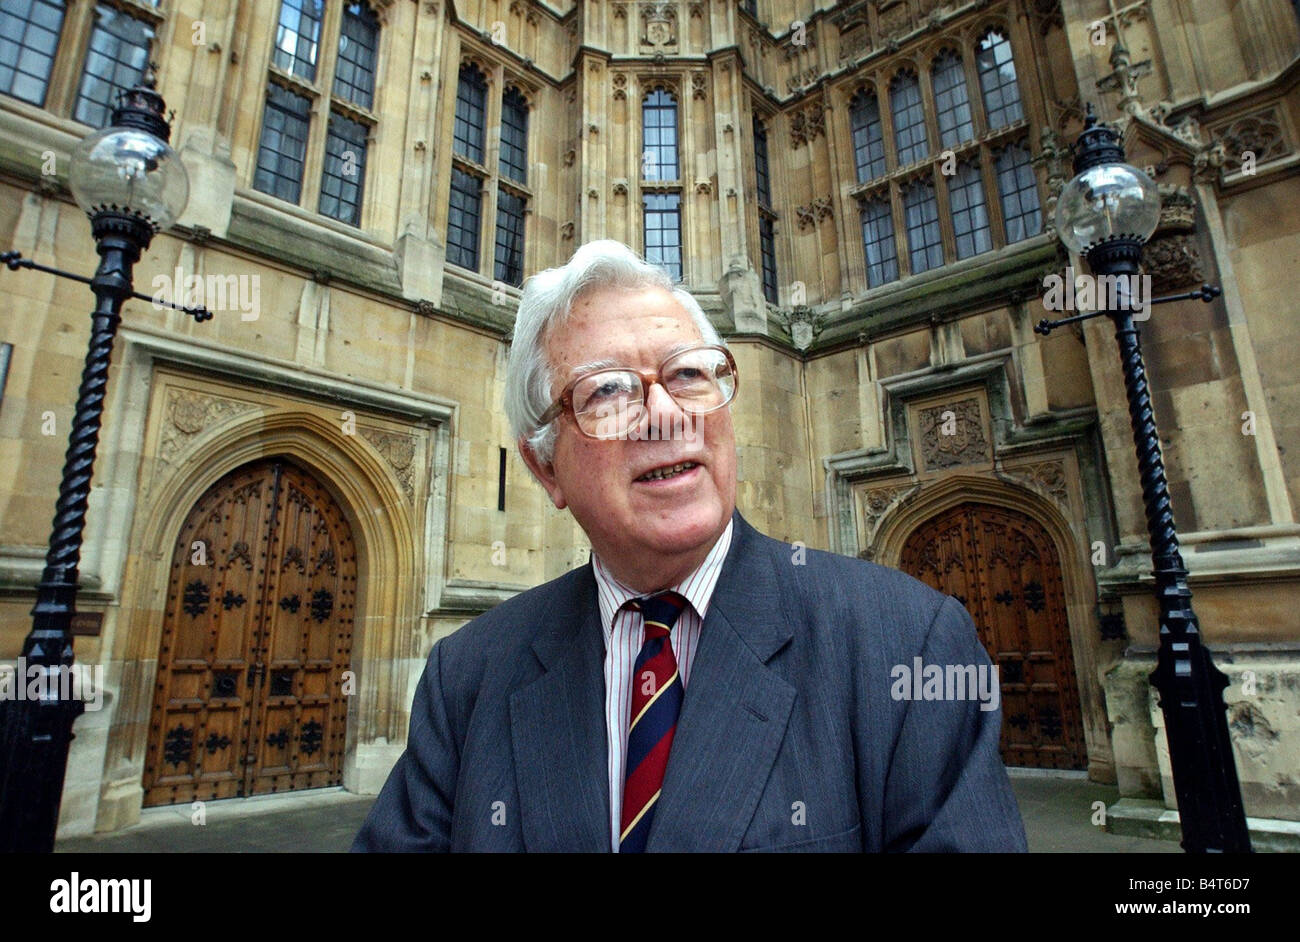 Lord Geoffrey Howe Conservative politician 4th Feb 2003 - Stock Image